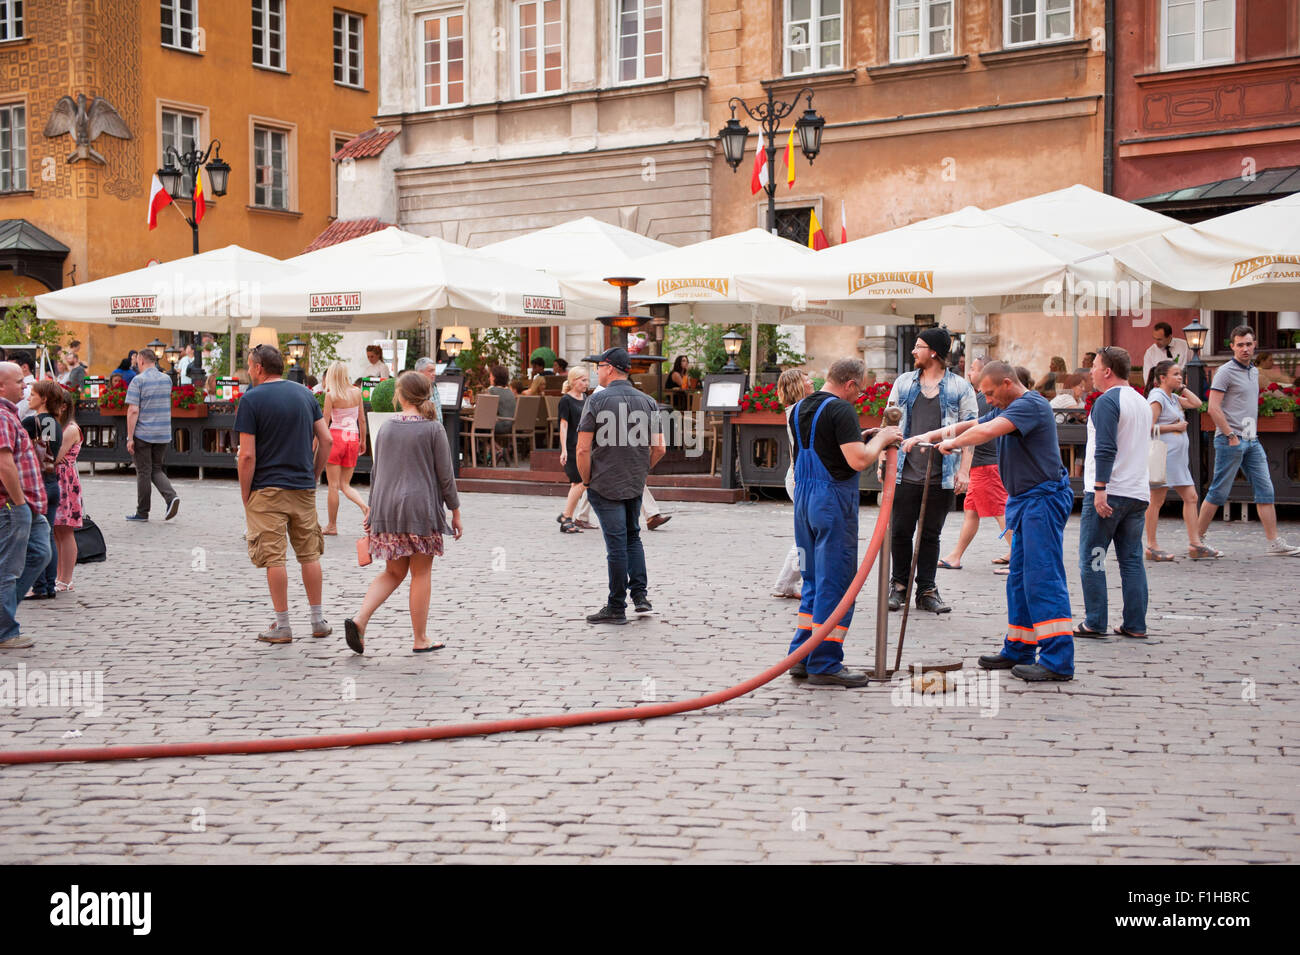 Workers shutting off water curtain hydrant - Stock Image